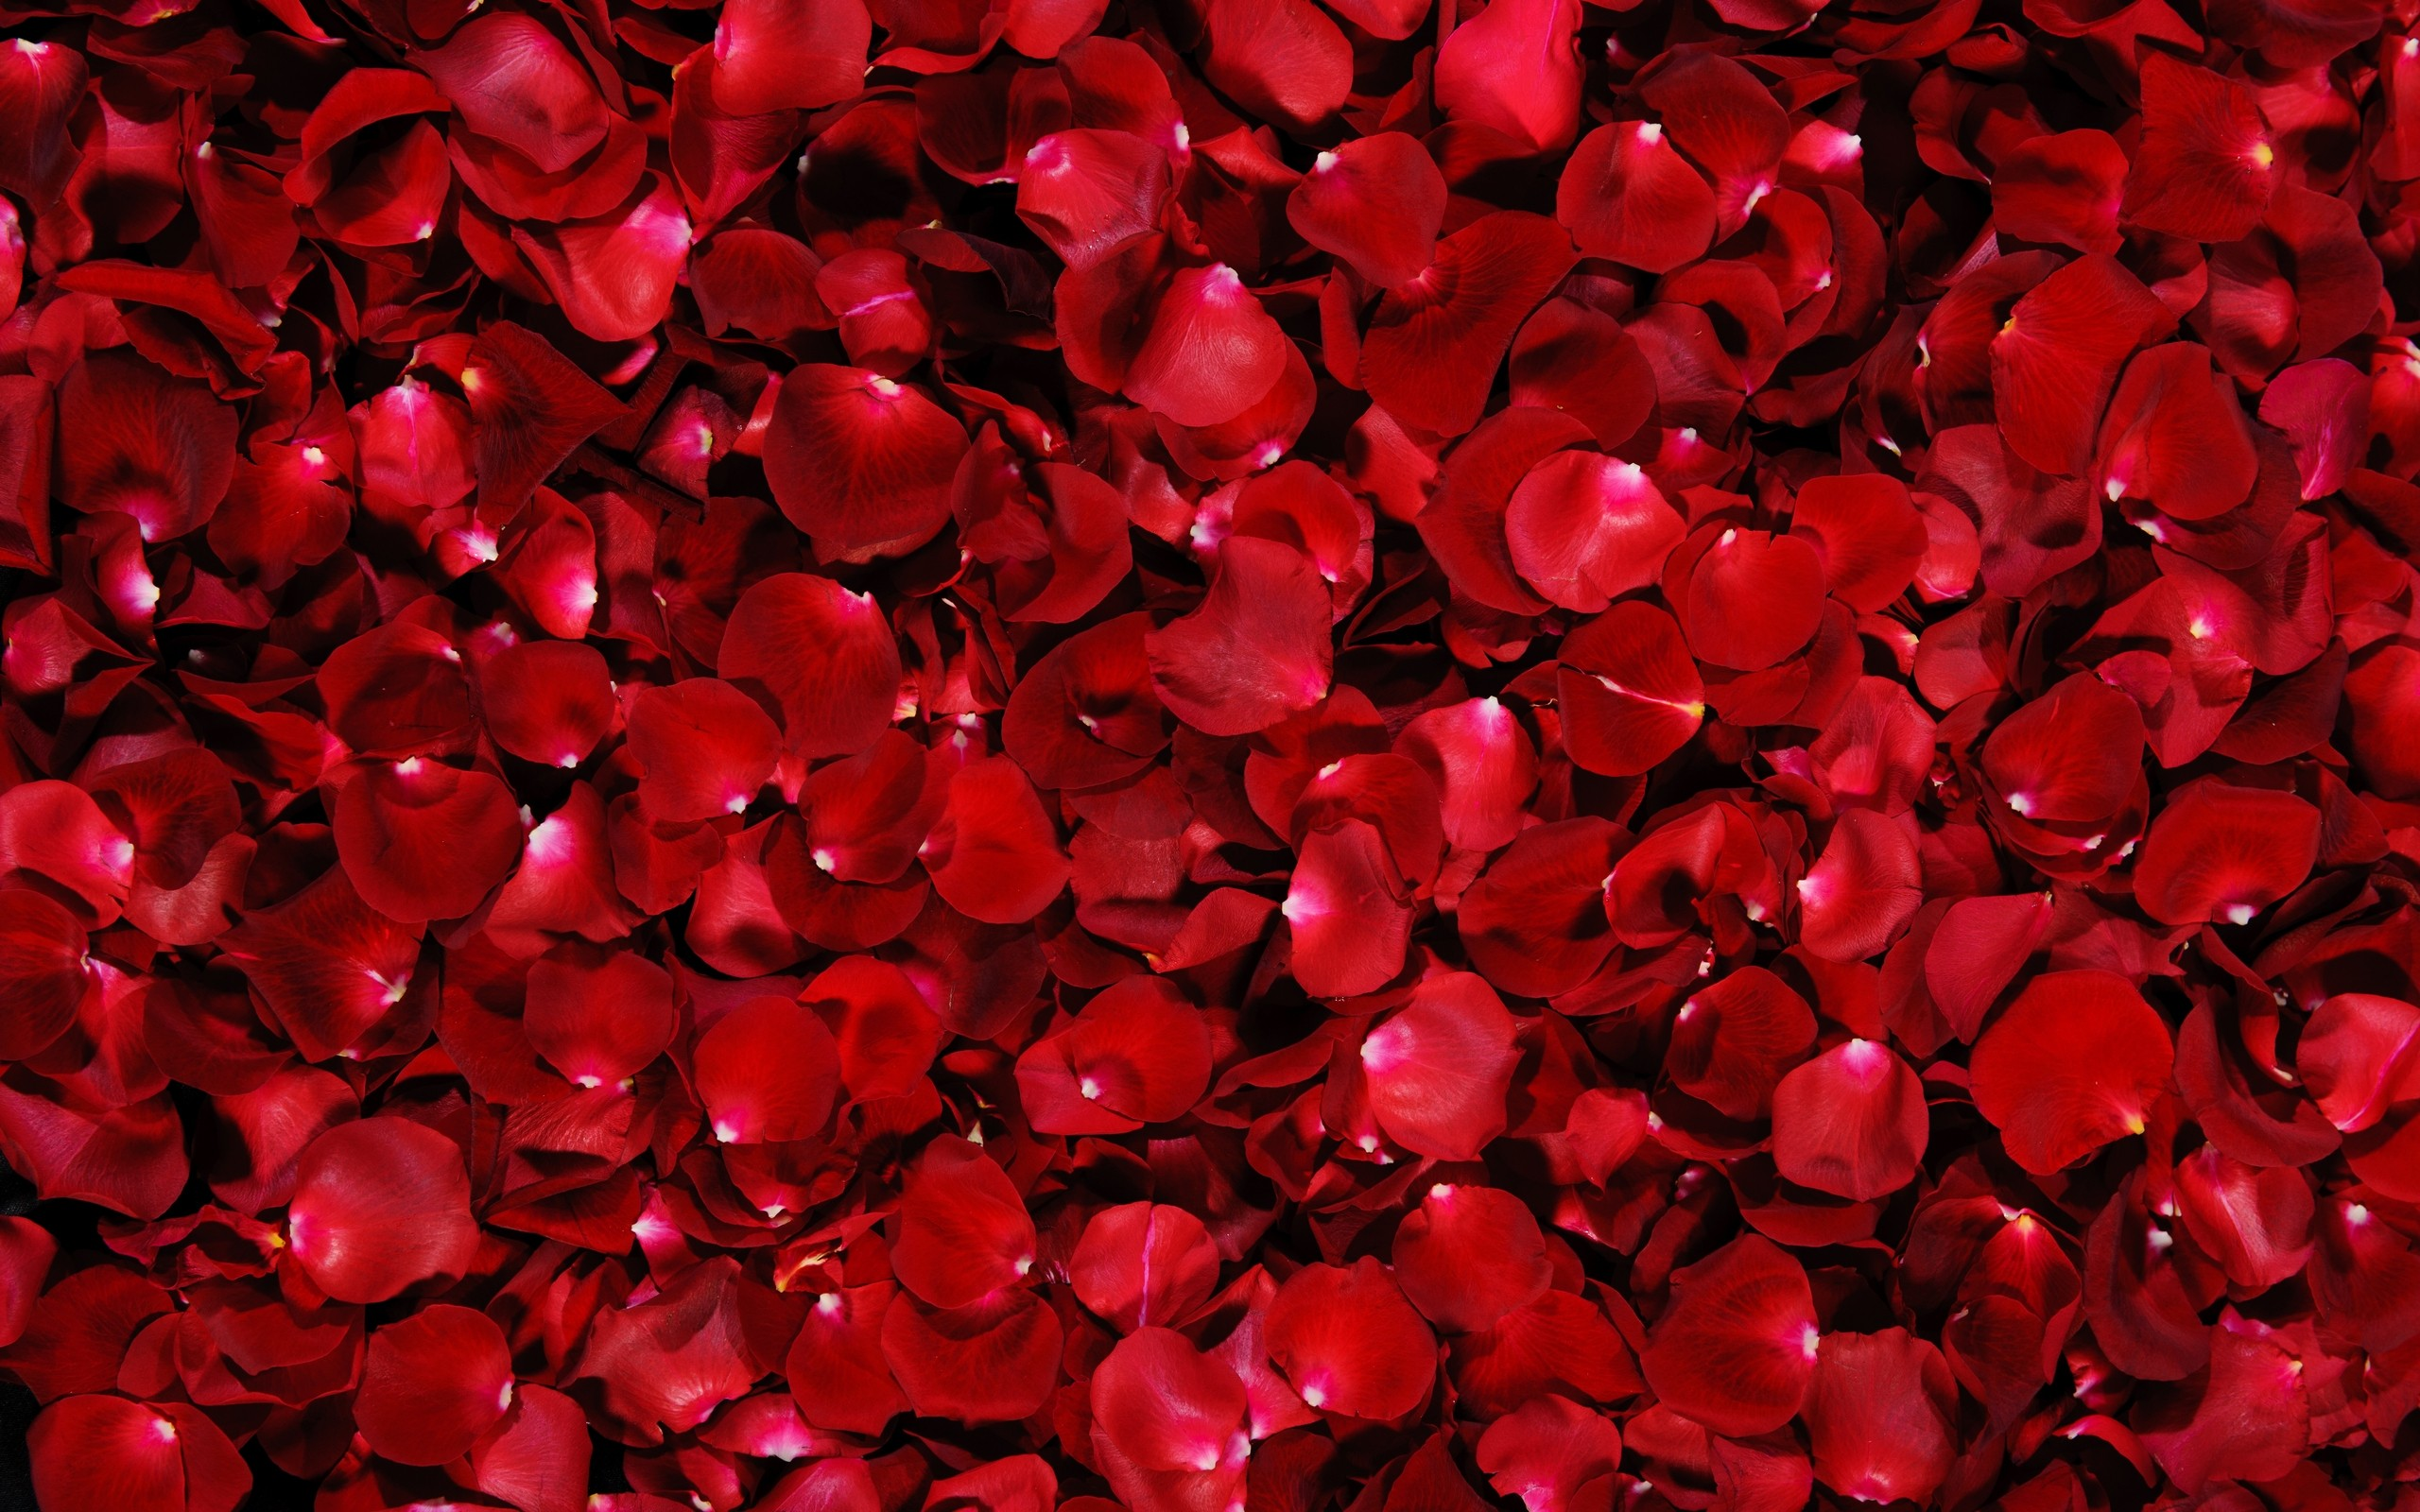 2560x1600 Red Rose Flowers Desktop Pc And Mac Wallpaper